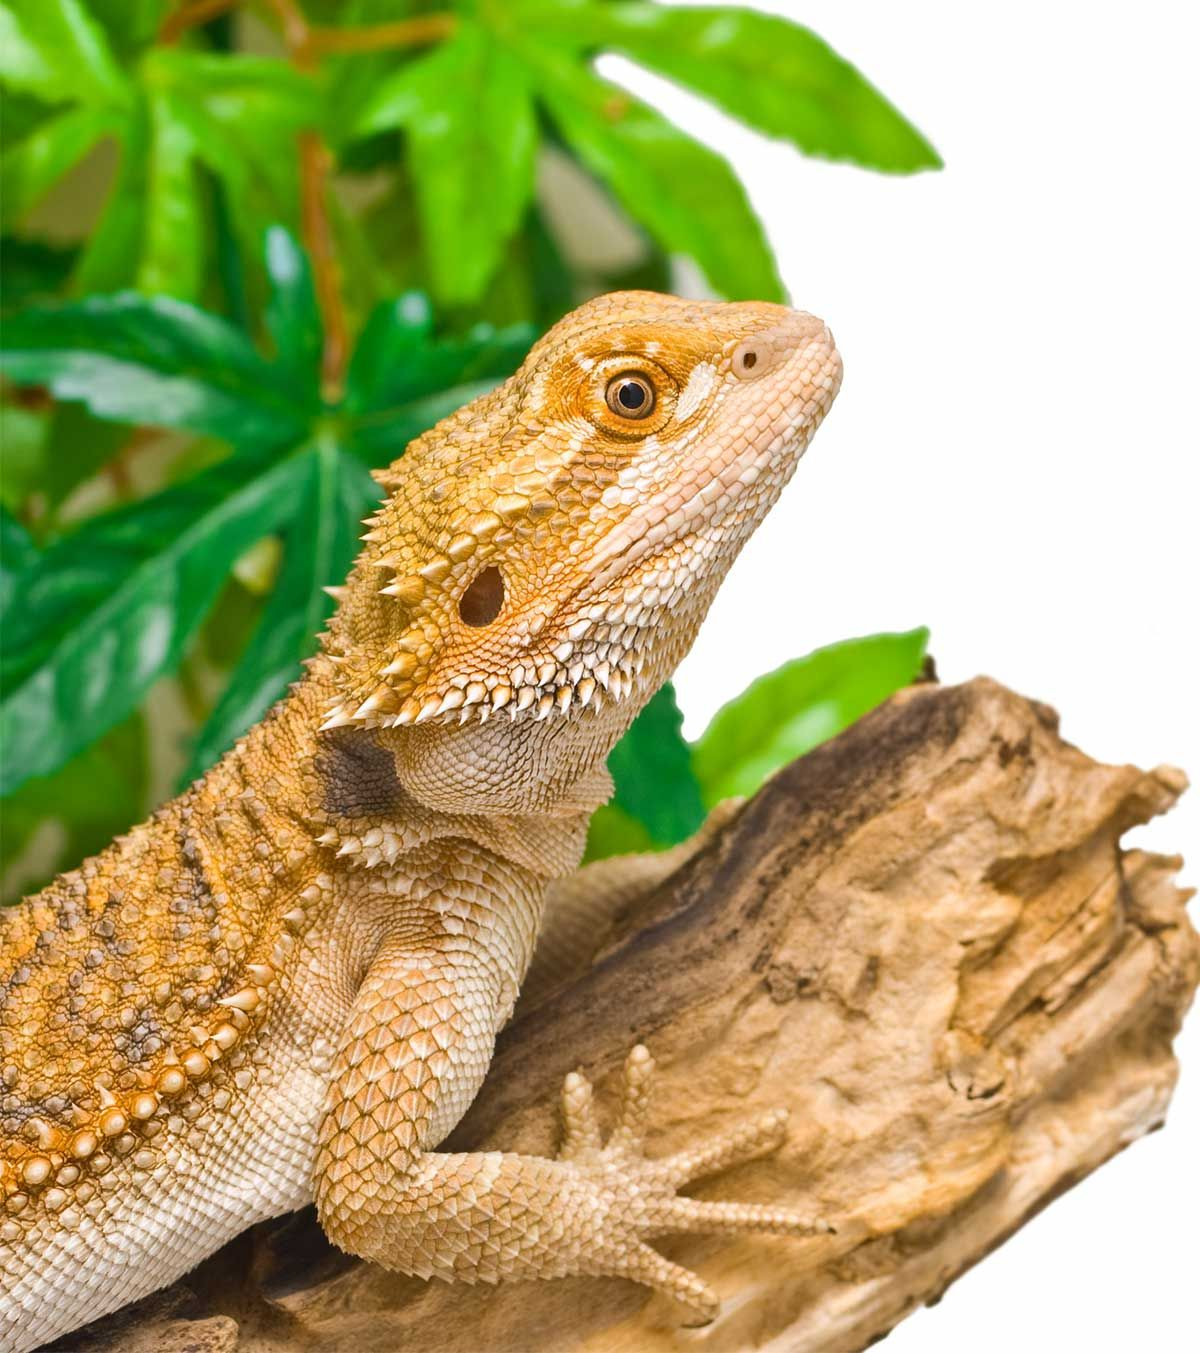 How To Care For A Bearded Dragon - A Simple Bearded Dragon Care Guide